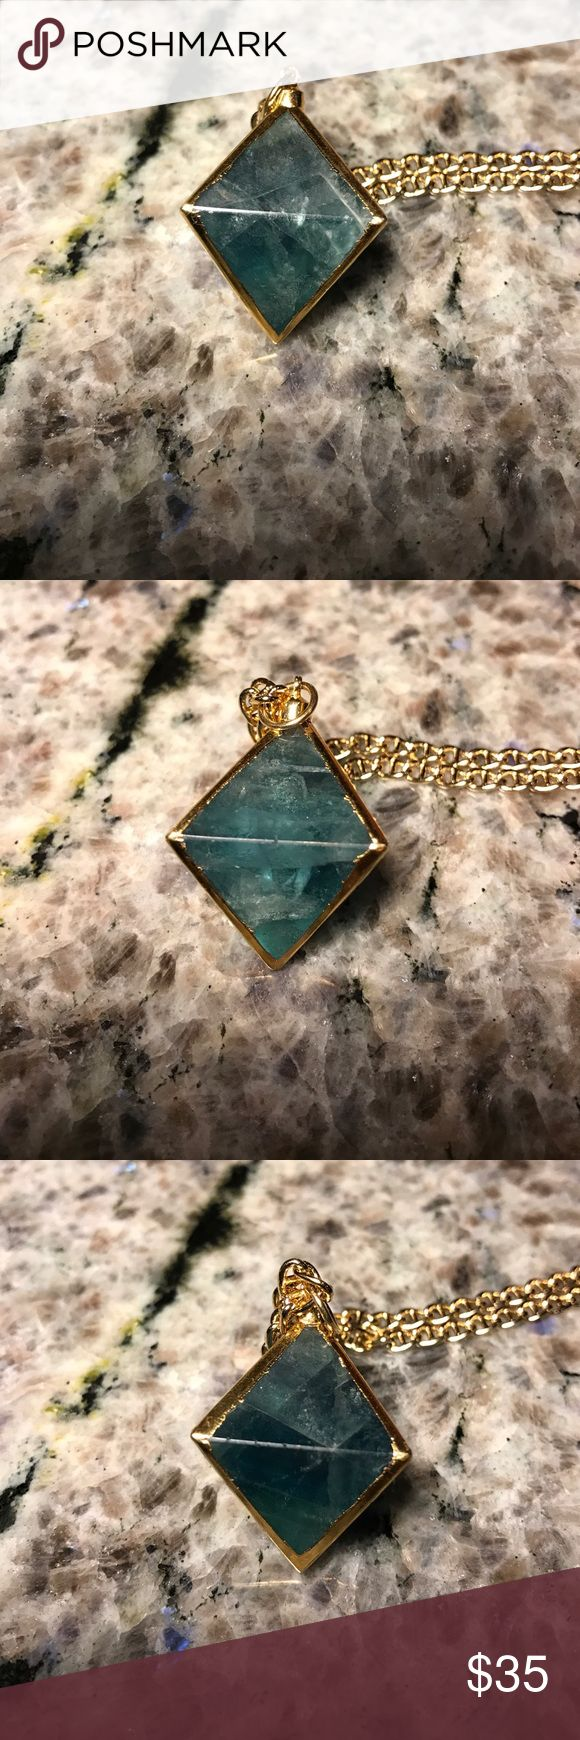 """Christina V. 24k Gold Plated Pendant Necklace All brand new with dust pouch Chain is almost 14""""  pendant about 1""""  they are solid so they are a little heavy  chain is 24k gold plated  The last two pictures are just to show the length and what it looks like in. The first 4 are the actual Pendant being sold Chritina V.  Jewelry Necklaces"""